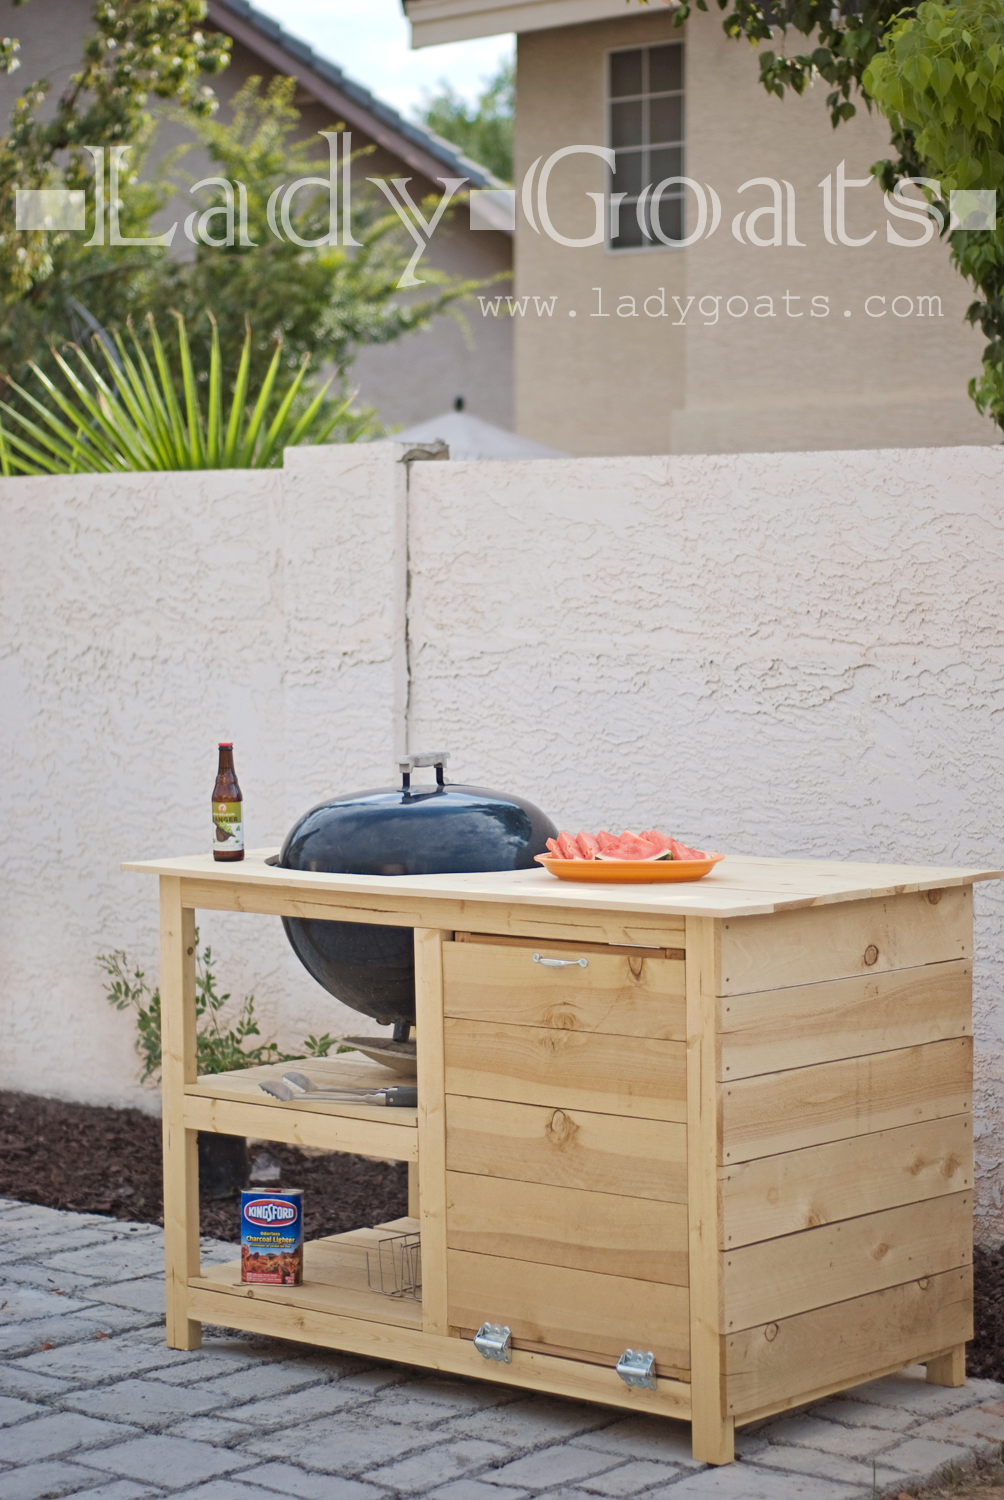 Oh-So-Simple Wood DIY Grill Station